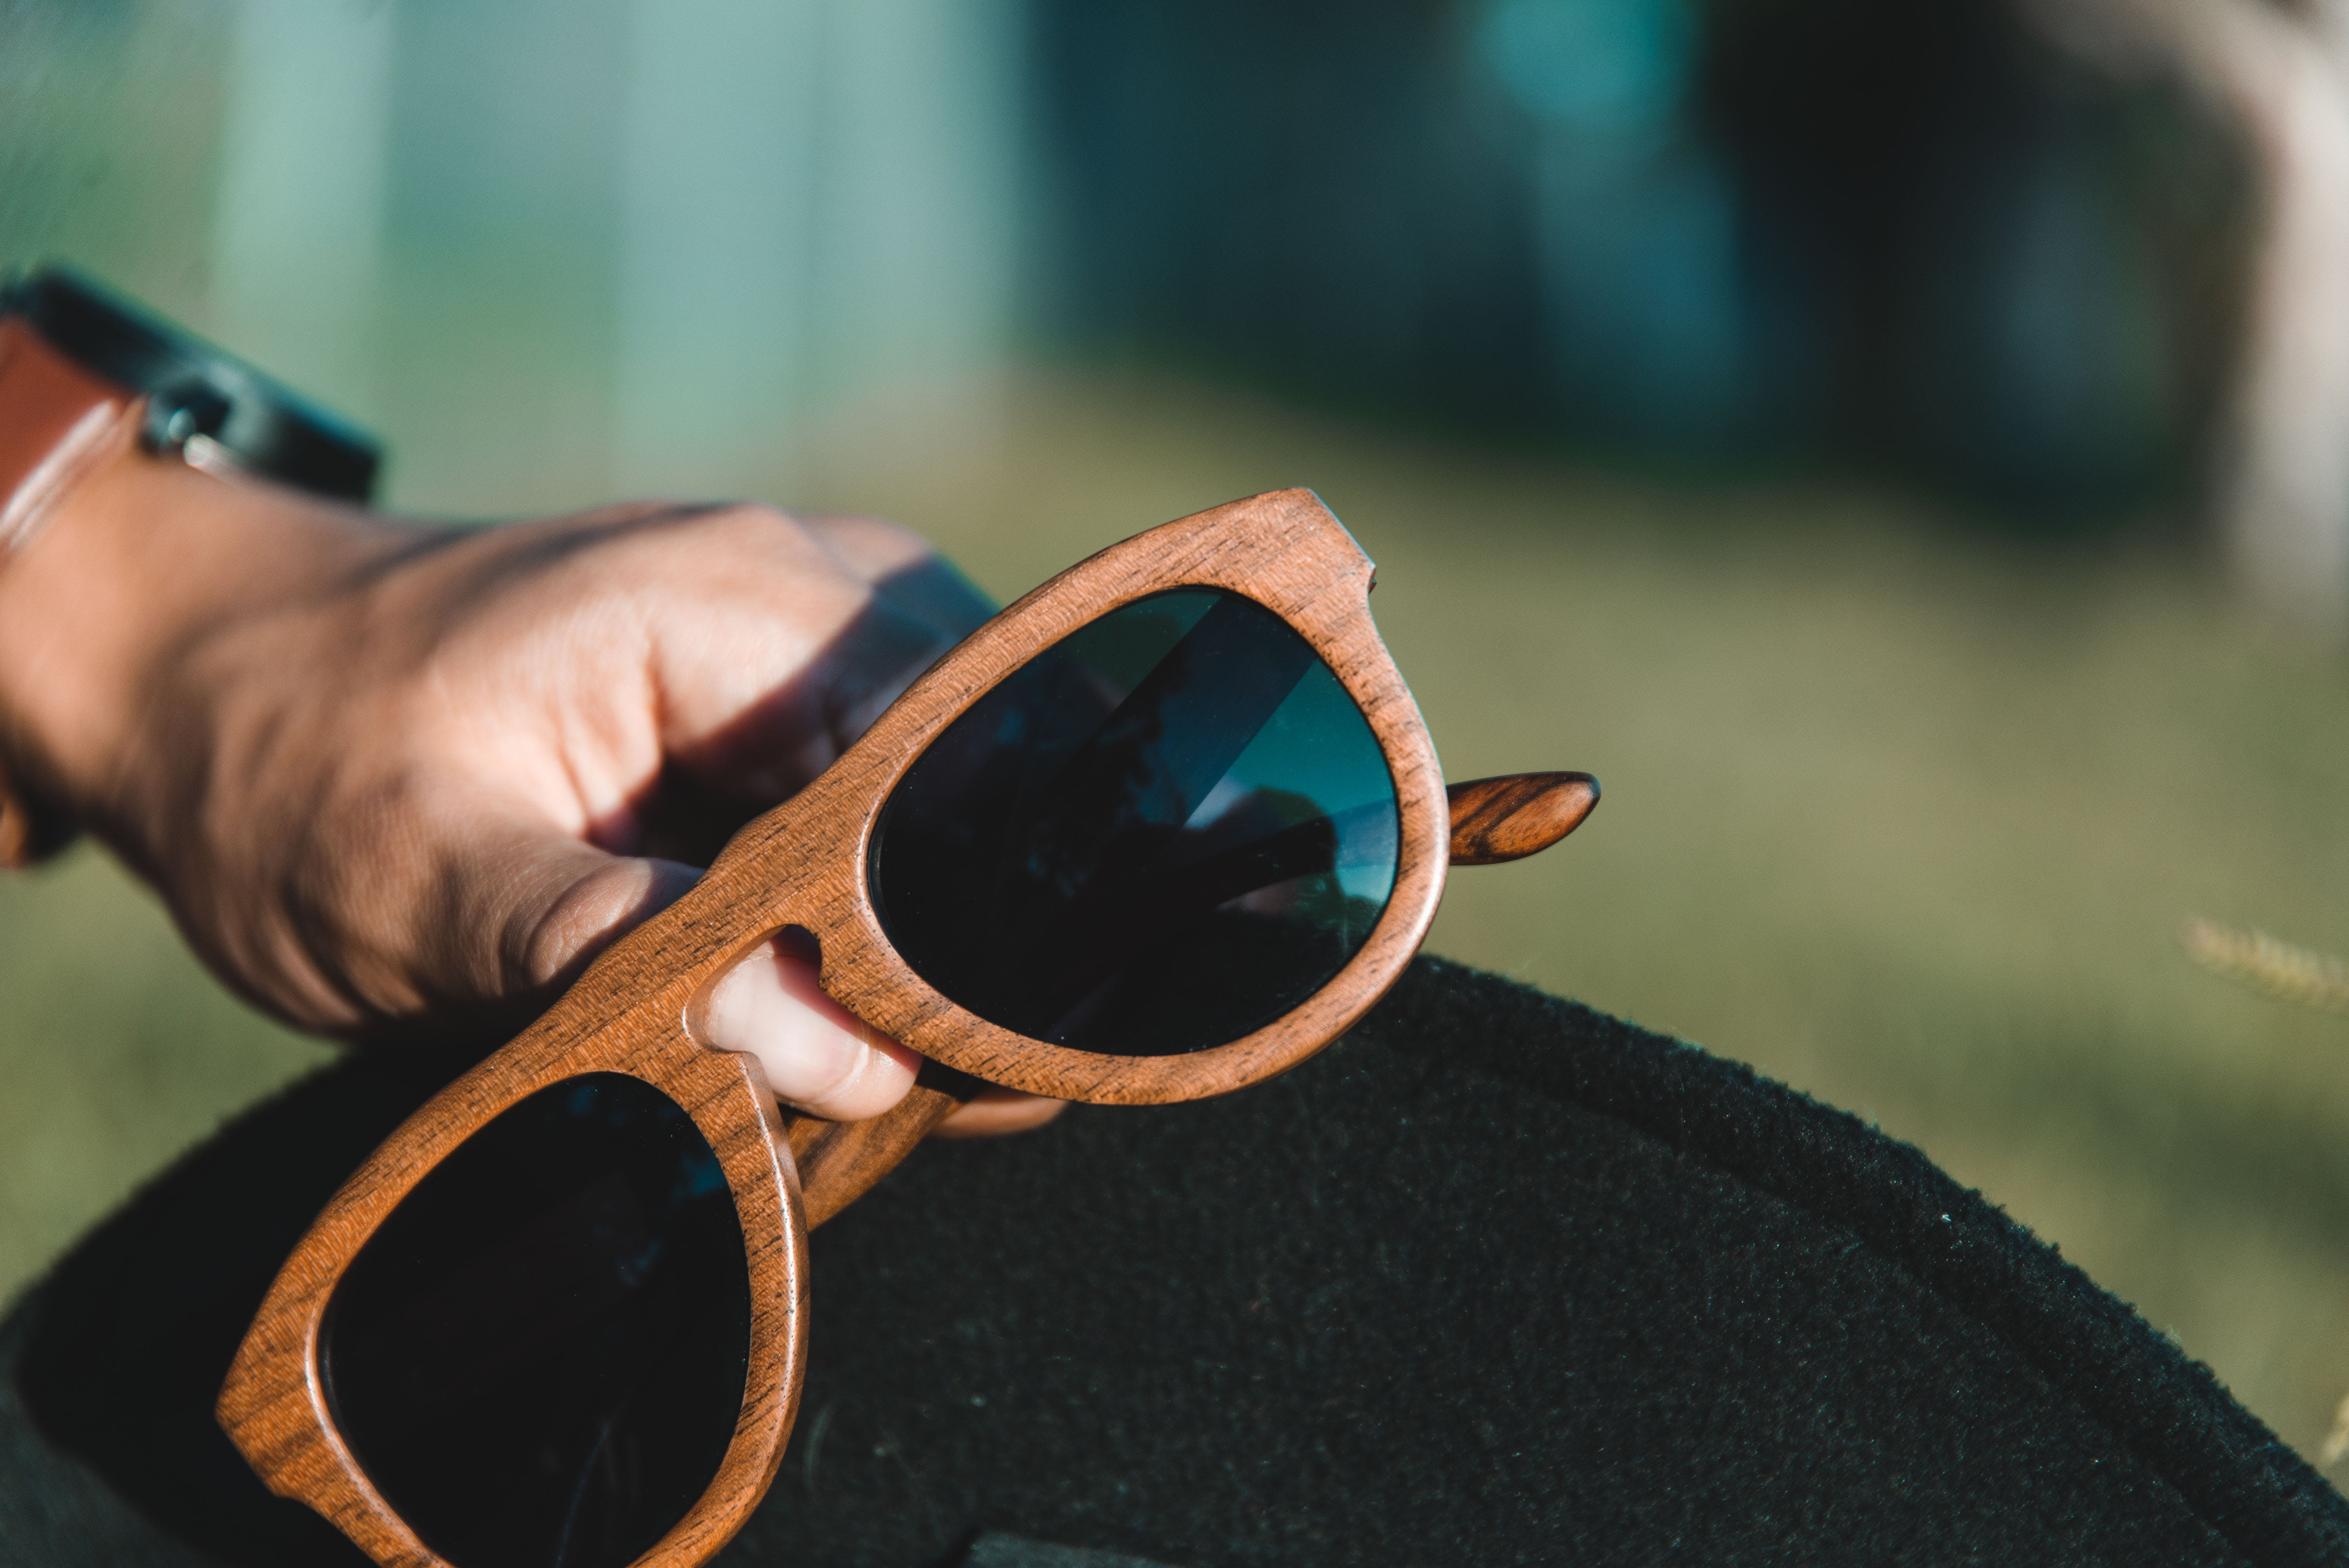 Free stock photo of hat, sun glasses, watch